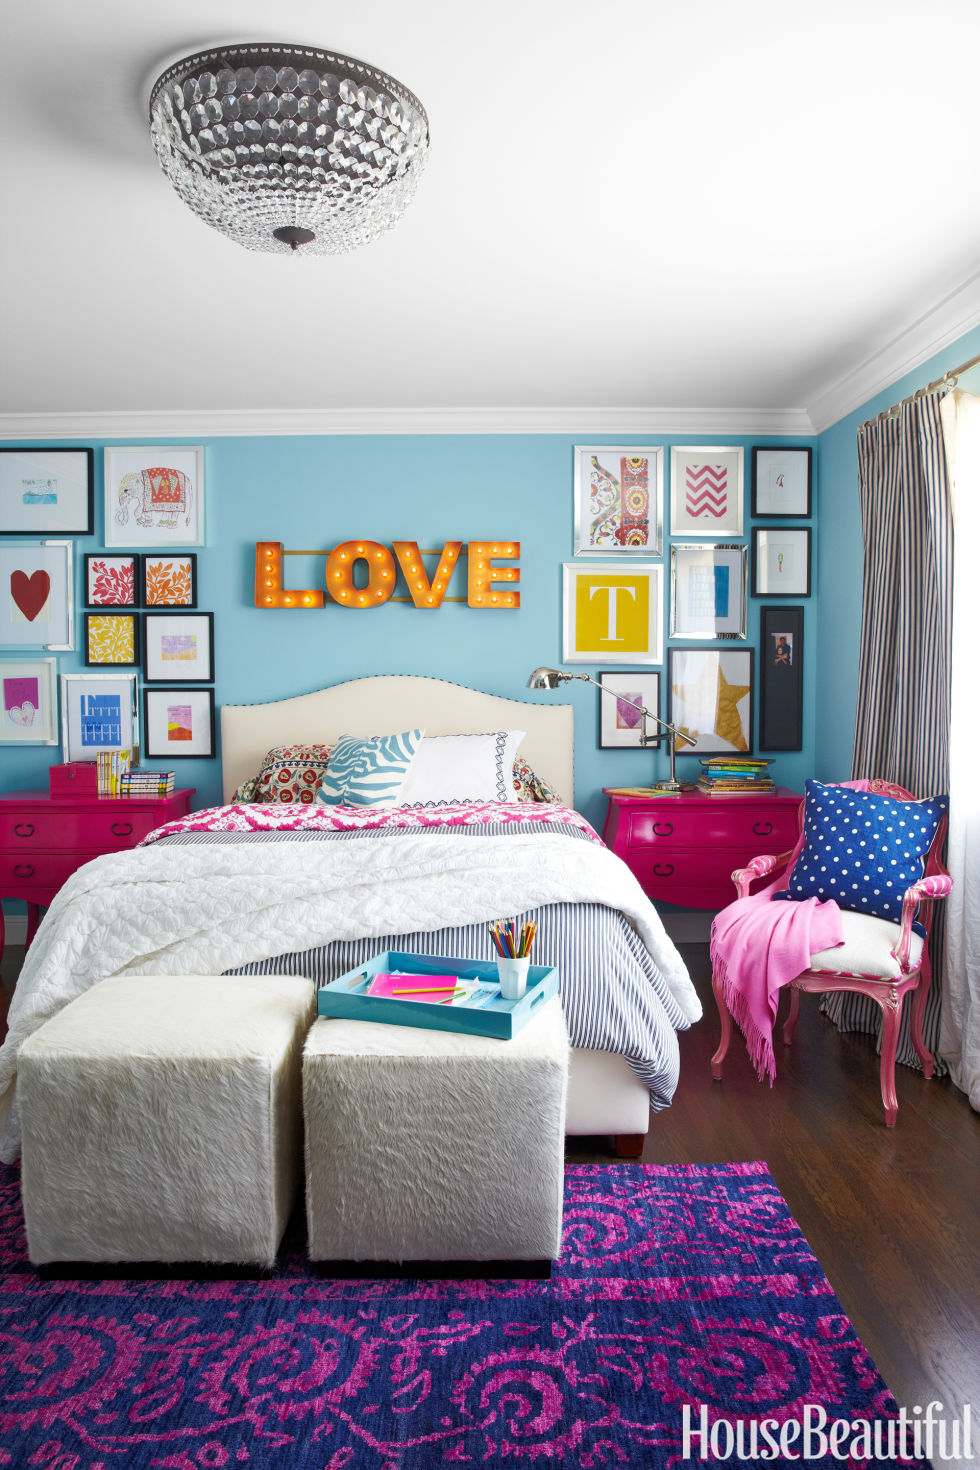 Kids Bedroom Interior Design kids room paint colors - kids bedroom colors